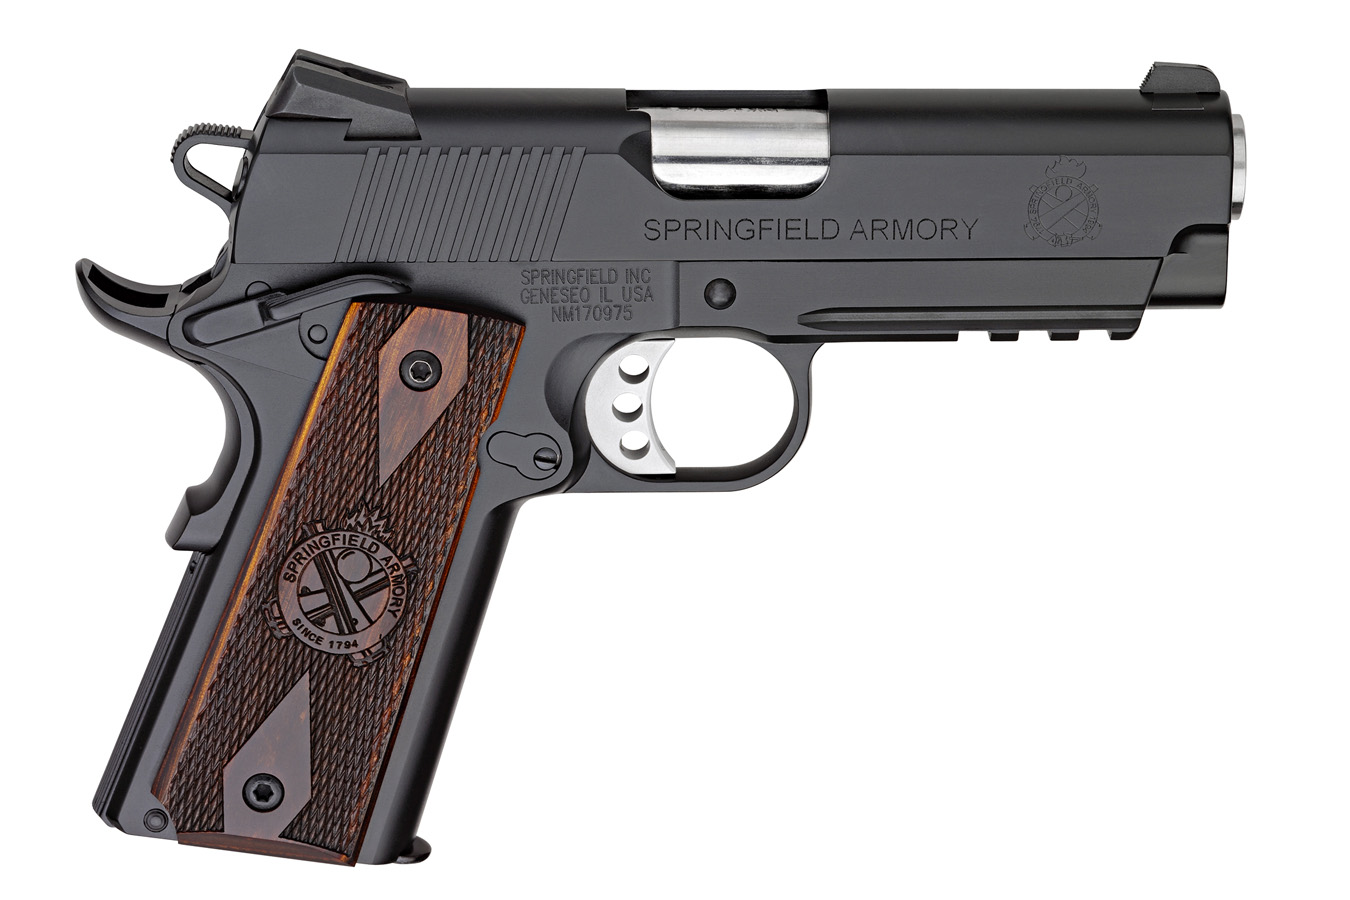 No. 20 Best Selling: SPRINGFIELD 45ACP LW CHAMPION OPERATOR W/ RANGE BAG